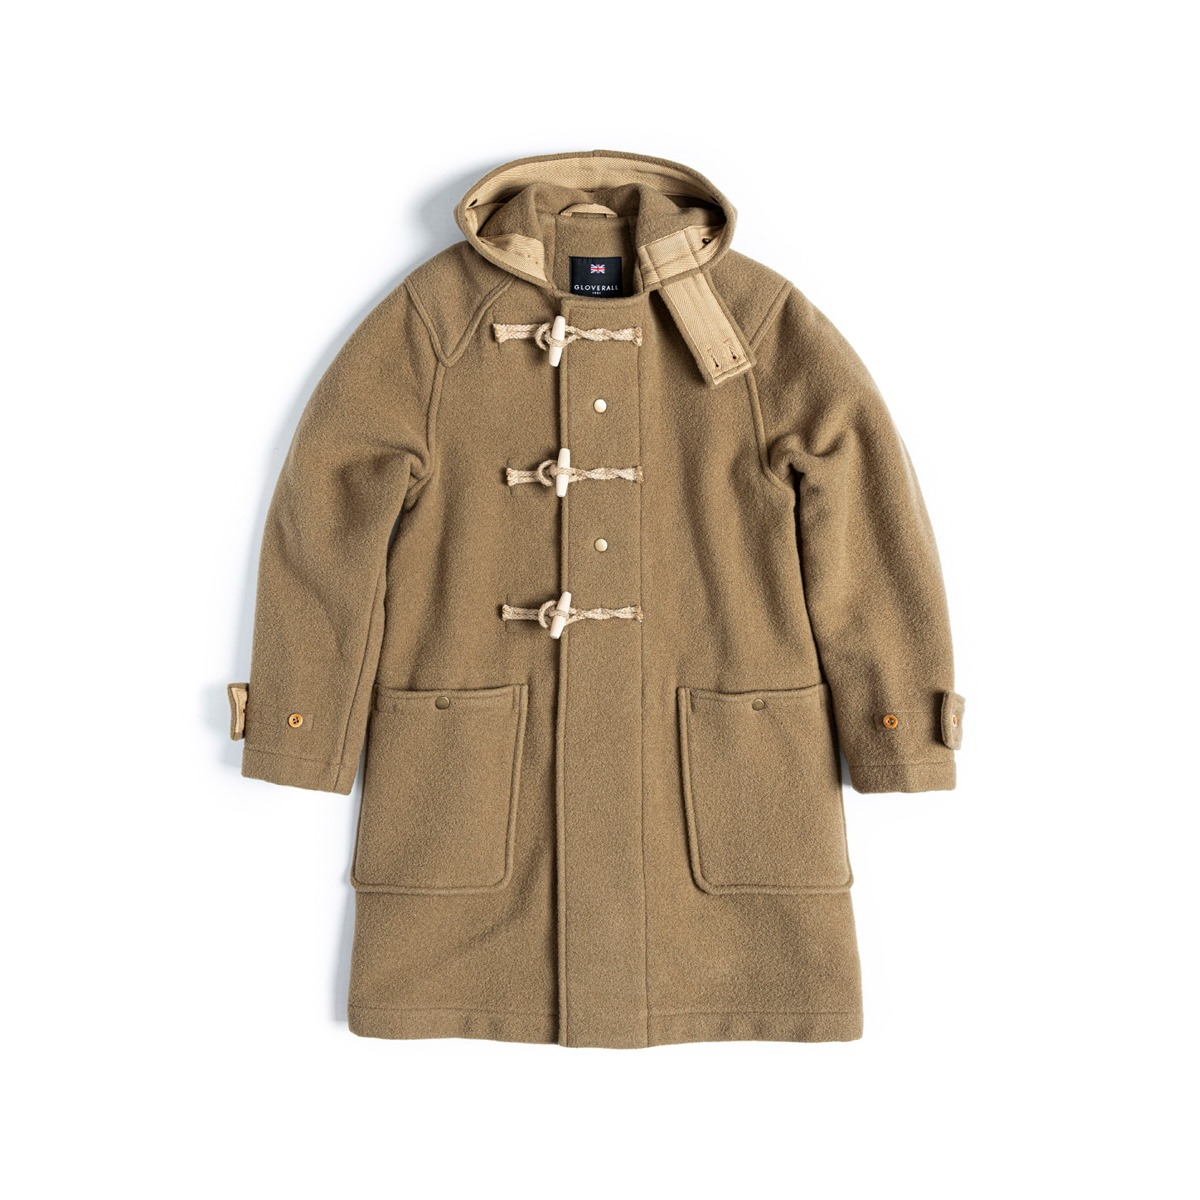 [EASTLOGUE] EASTLOGUE X GLOVERALL MONTY DUFFLE COAT 'CAMEL'